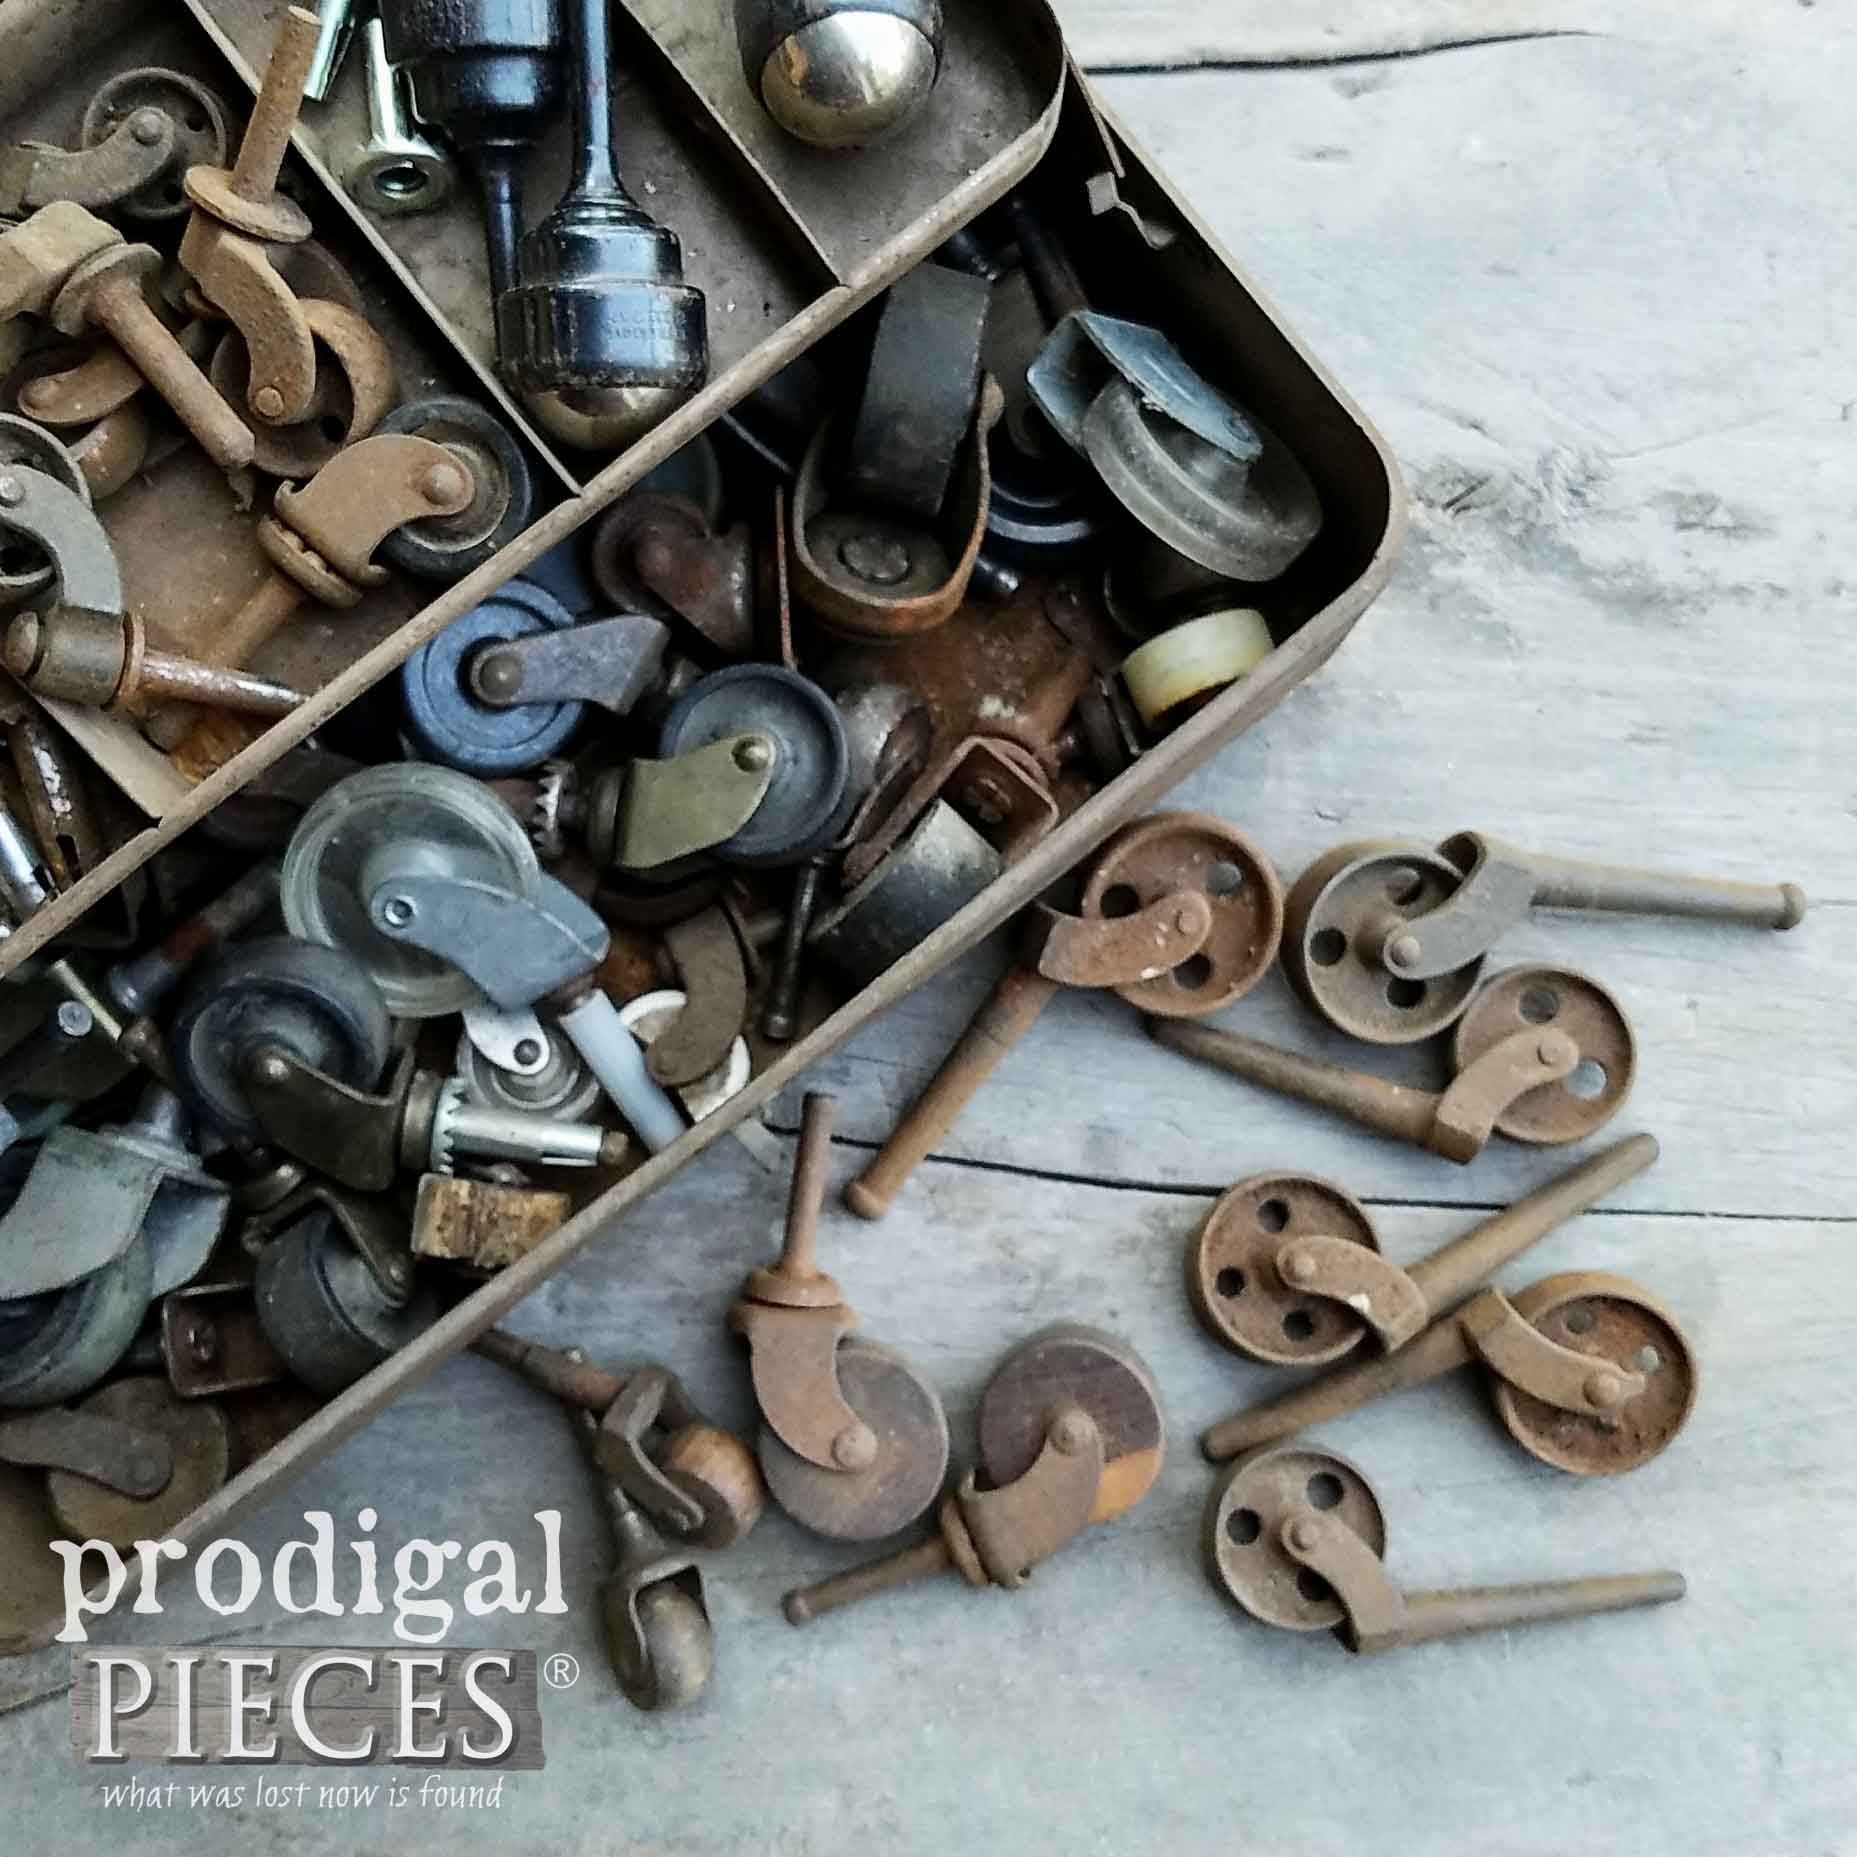 Collection of Antique Casters in Old Tool Box by Prodigal Pieces | prodigalpieces.com